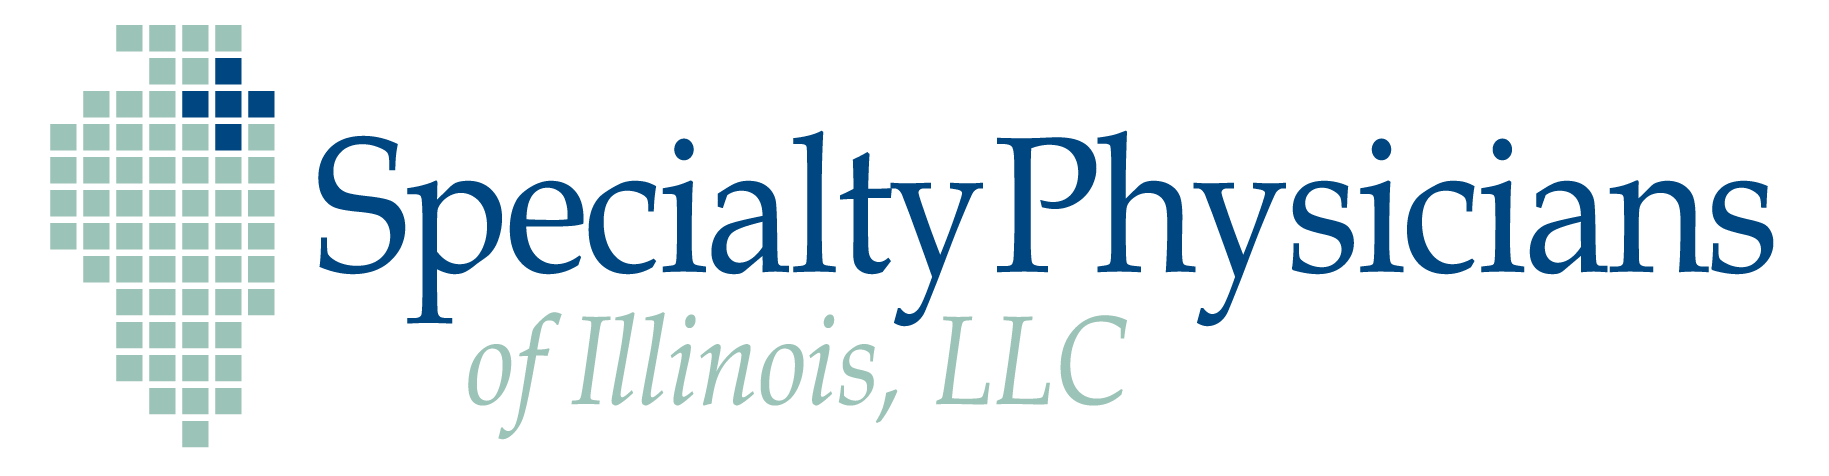 Specialty Physicians of Illinois logo